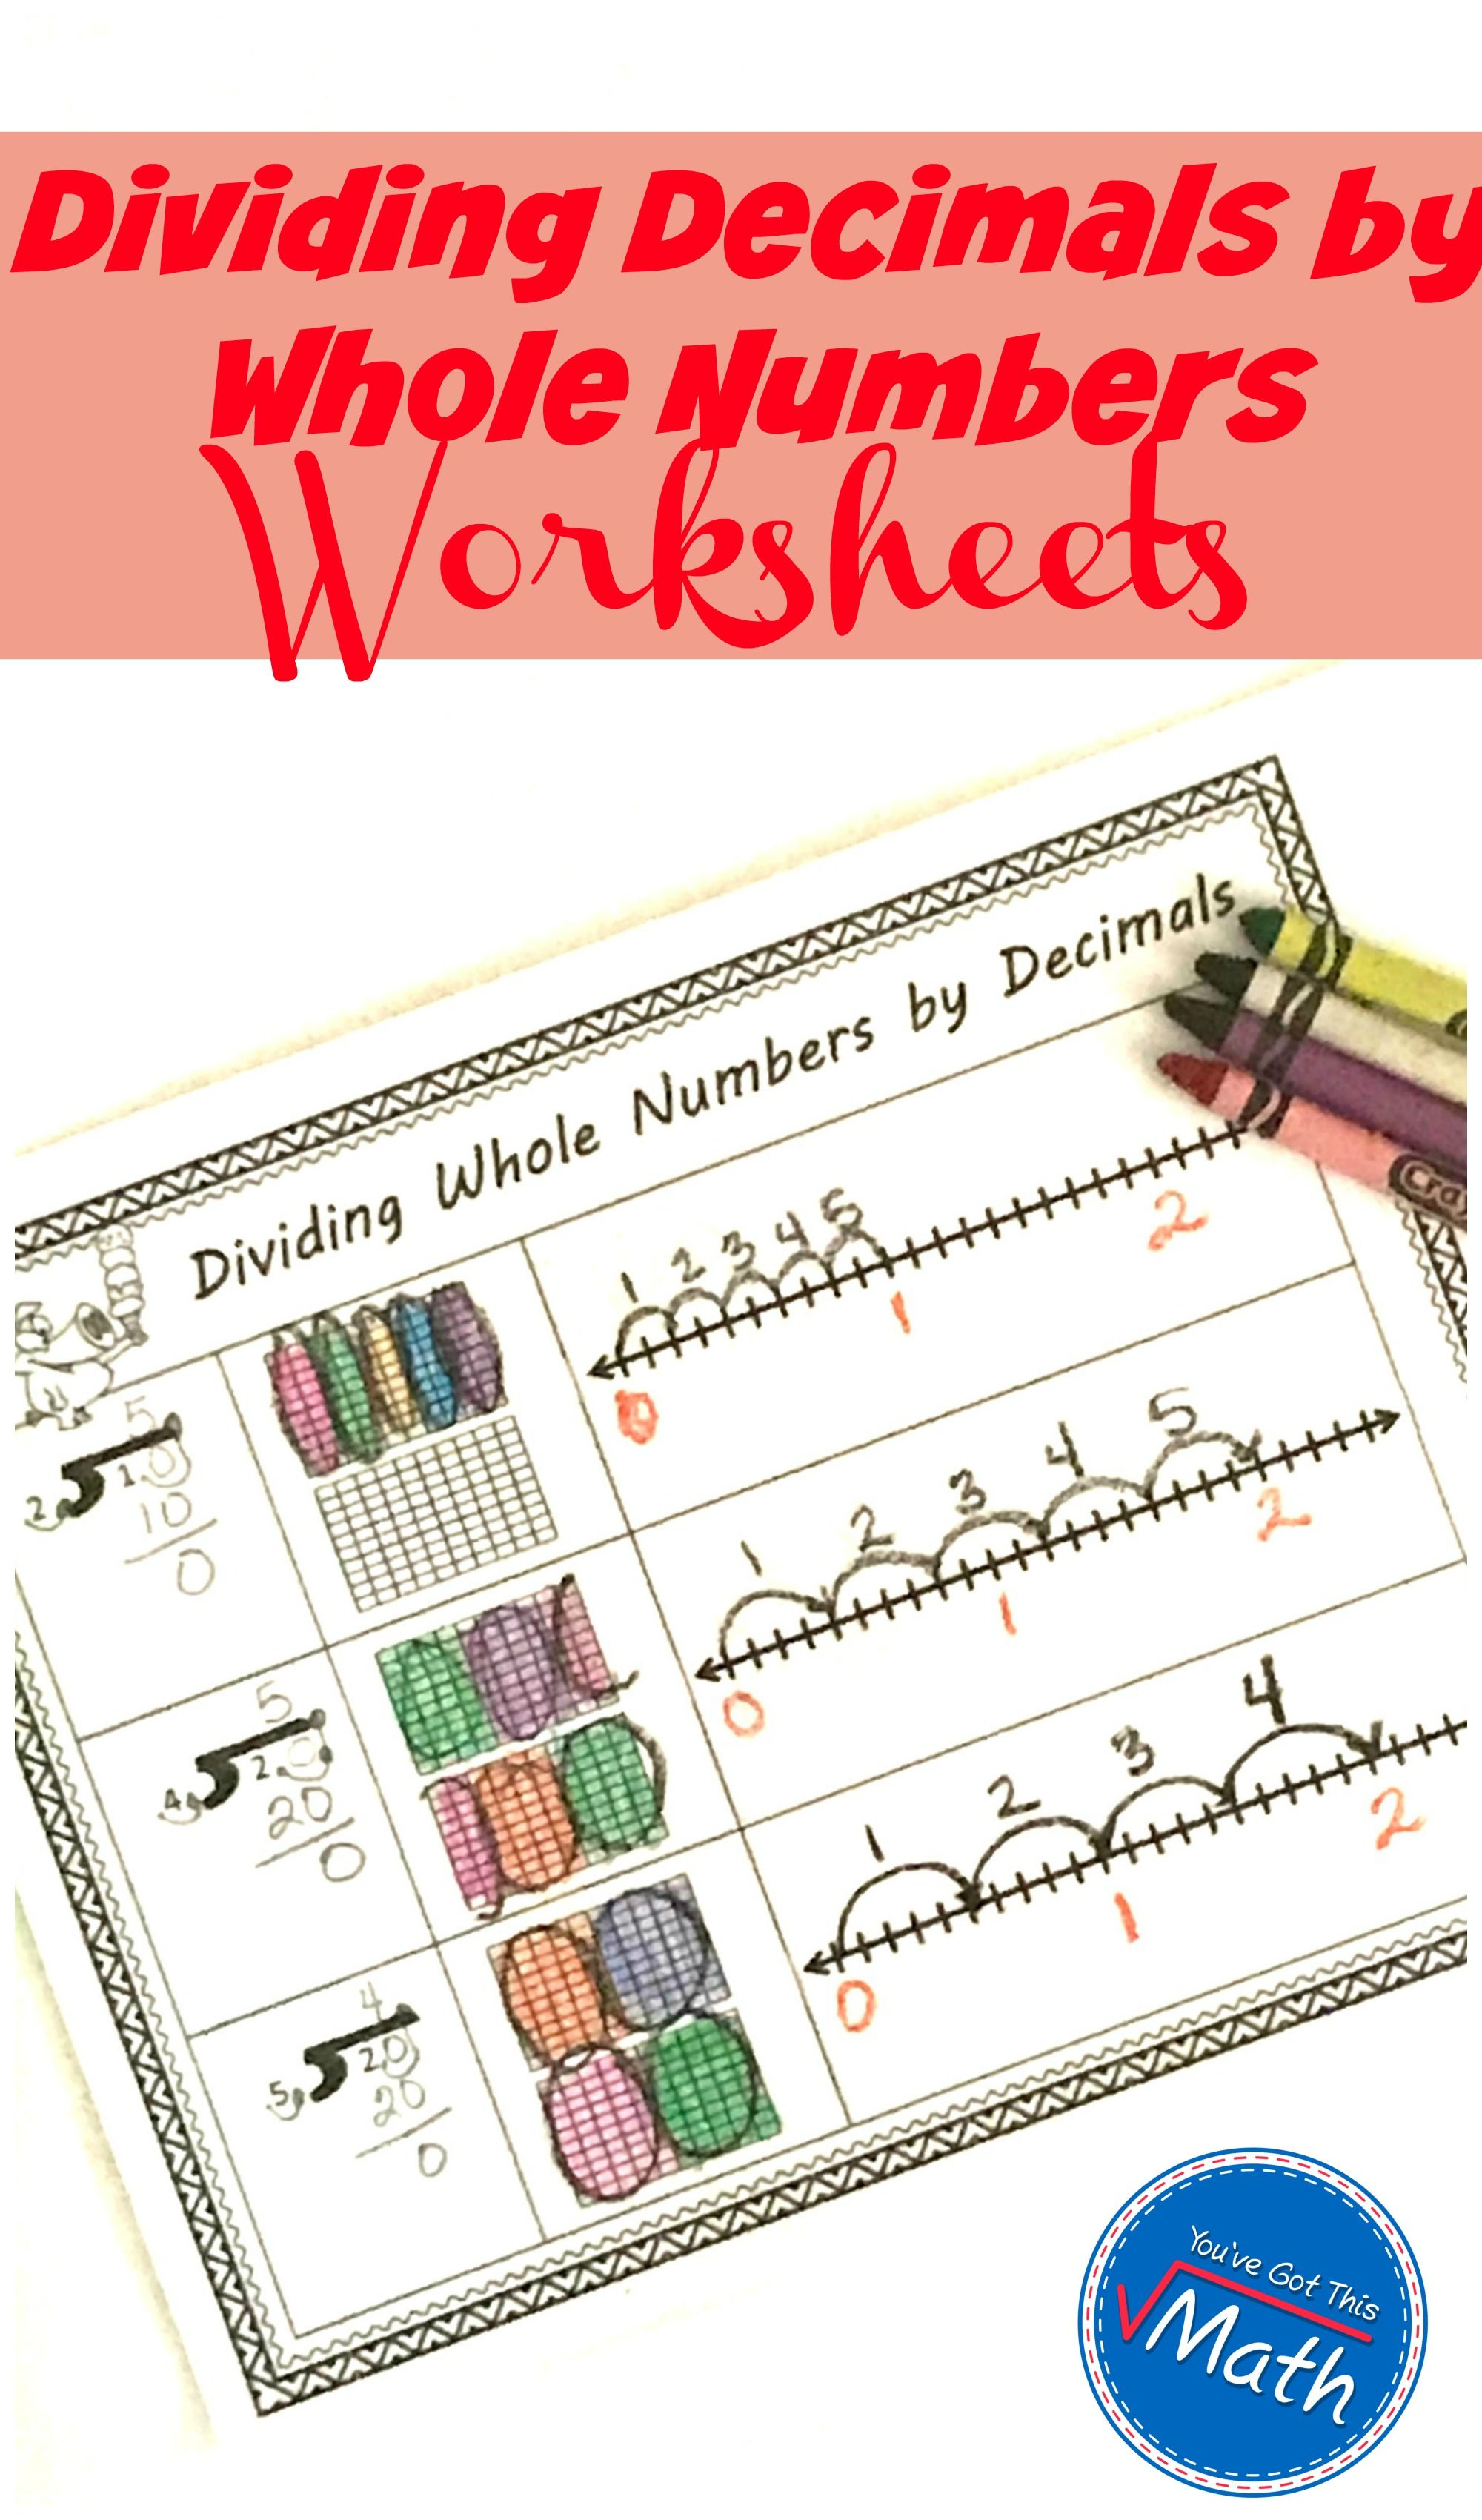 Dividing Decimals By Whole Numbers Worksheets